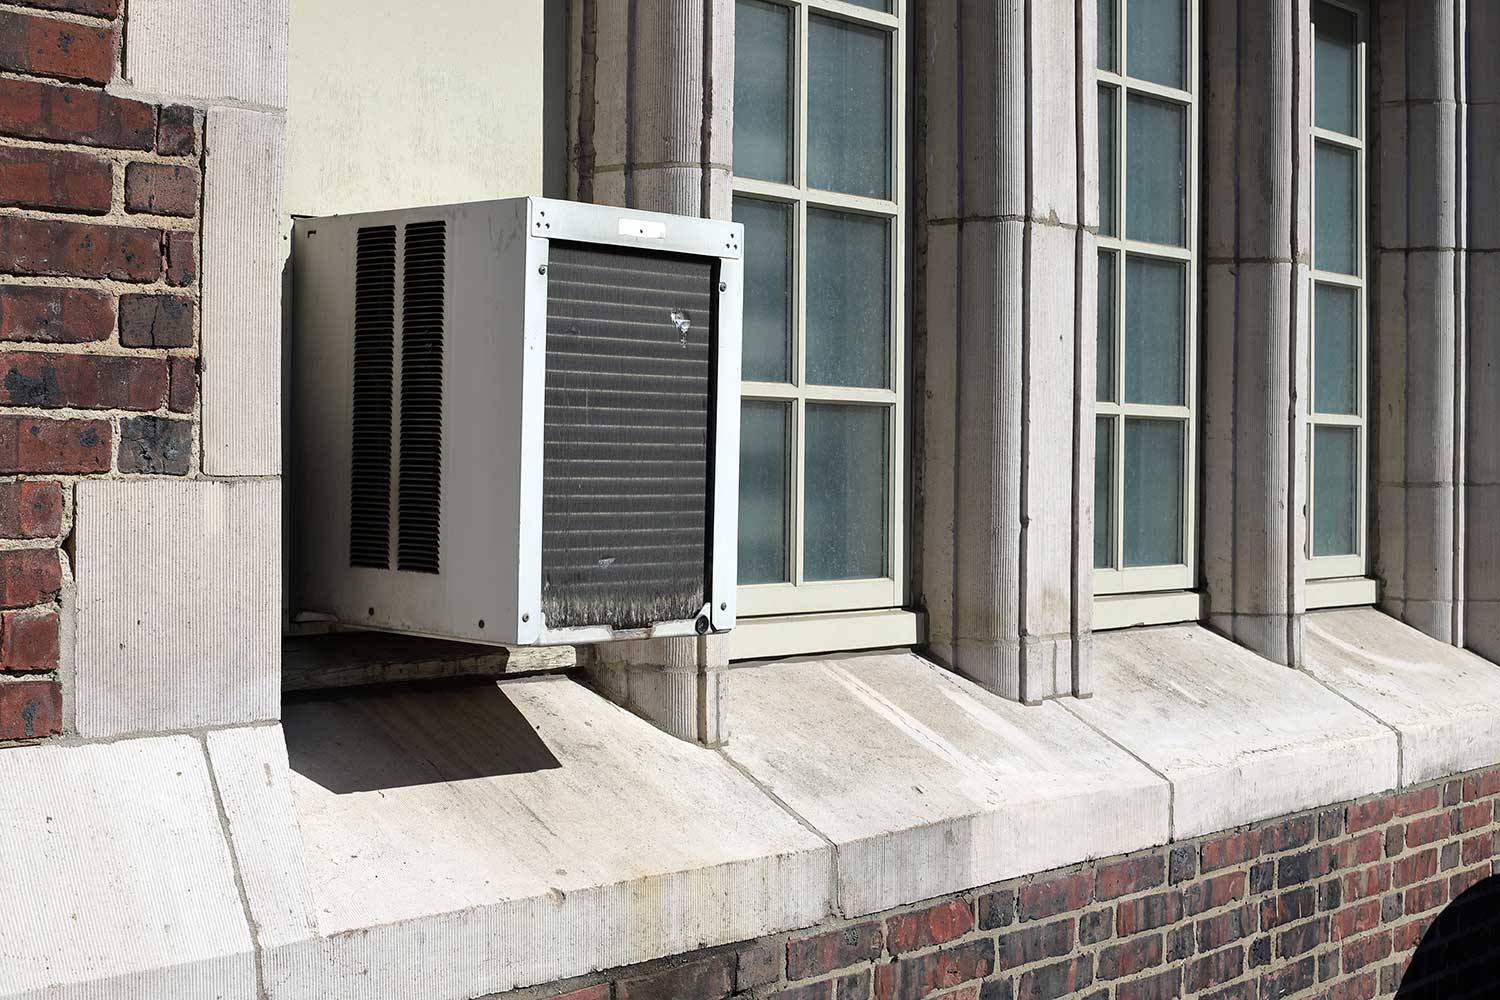 Window air conditioner unit on old brick building